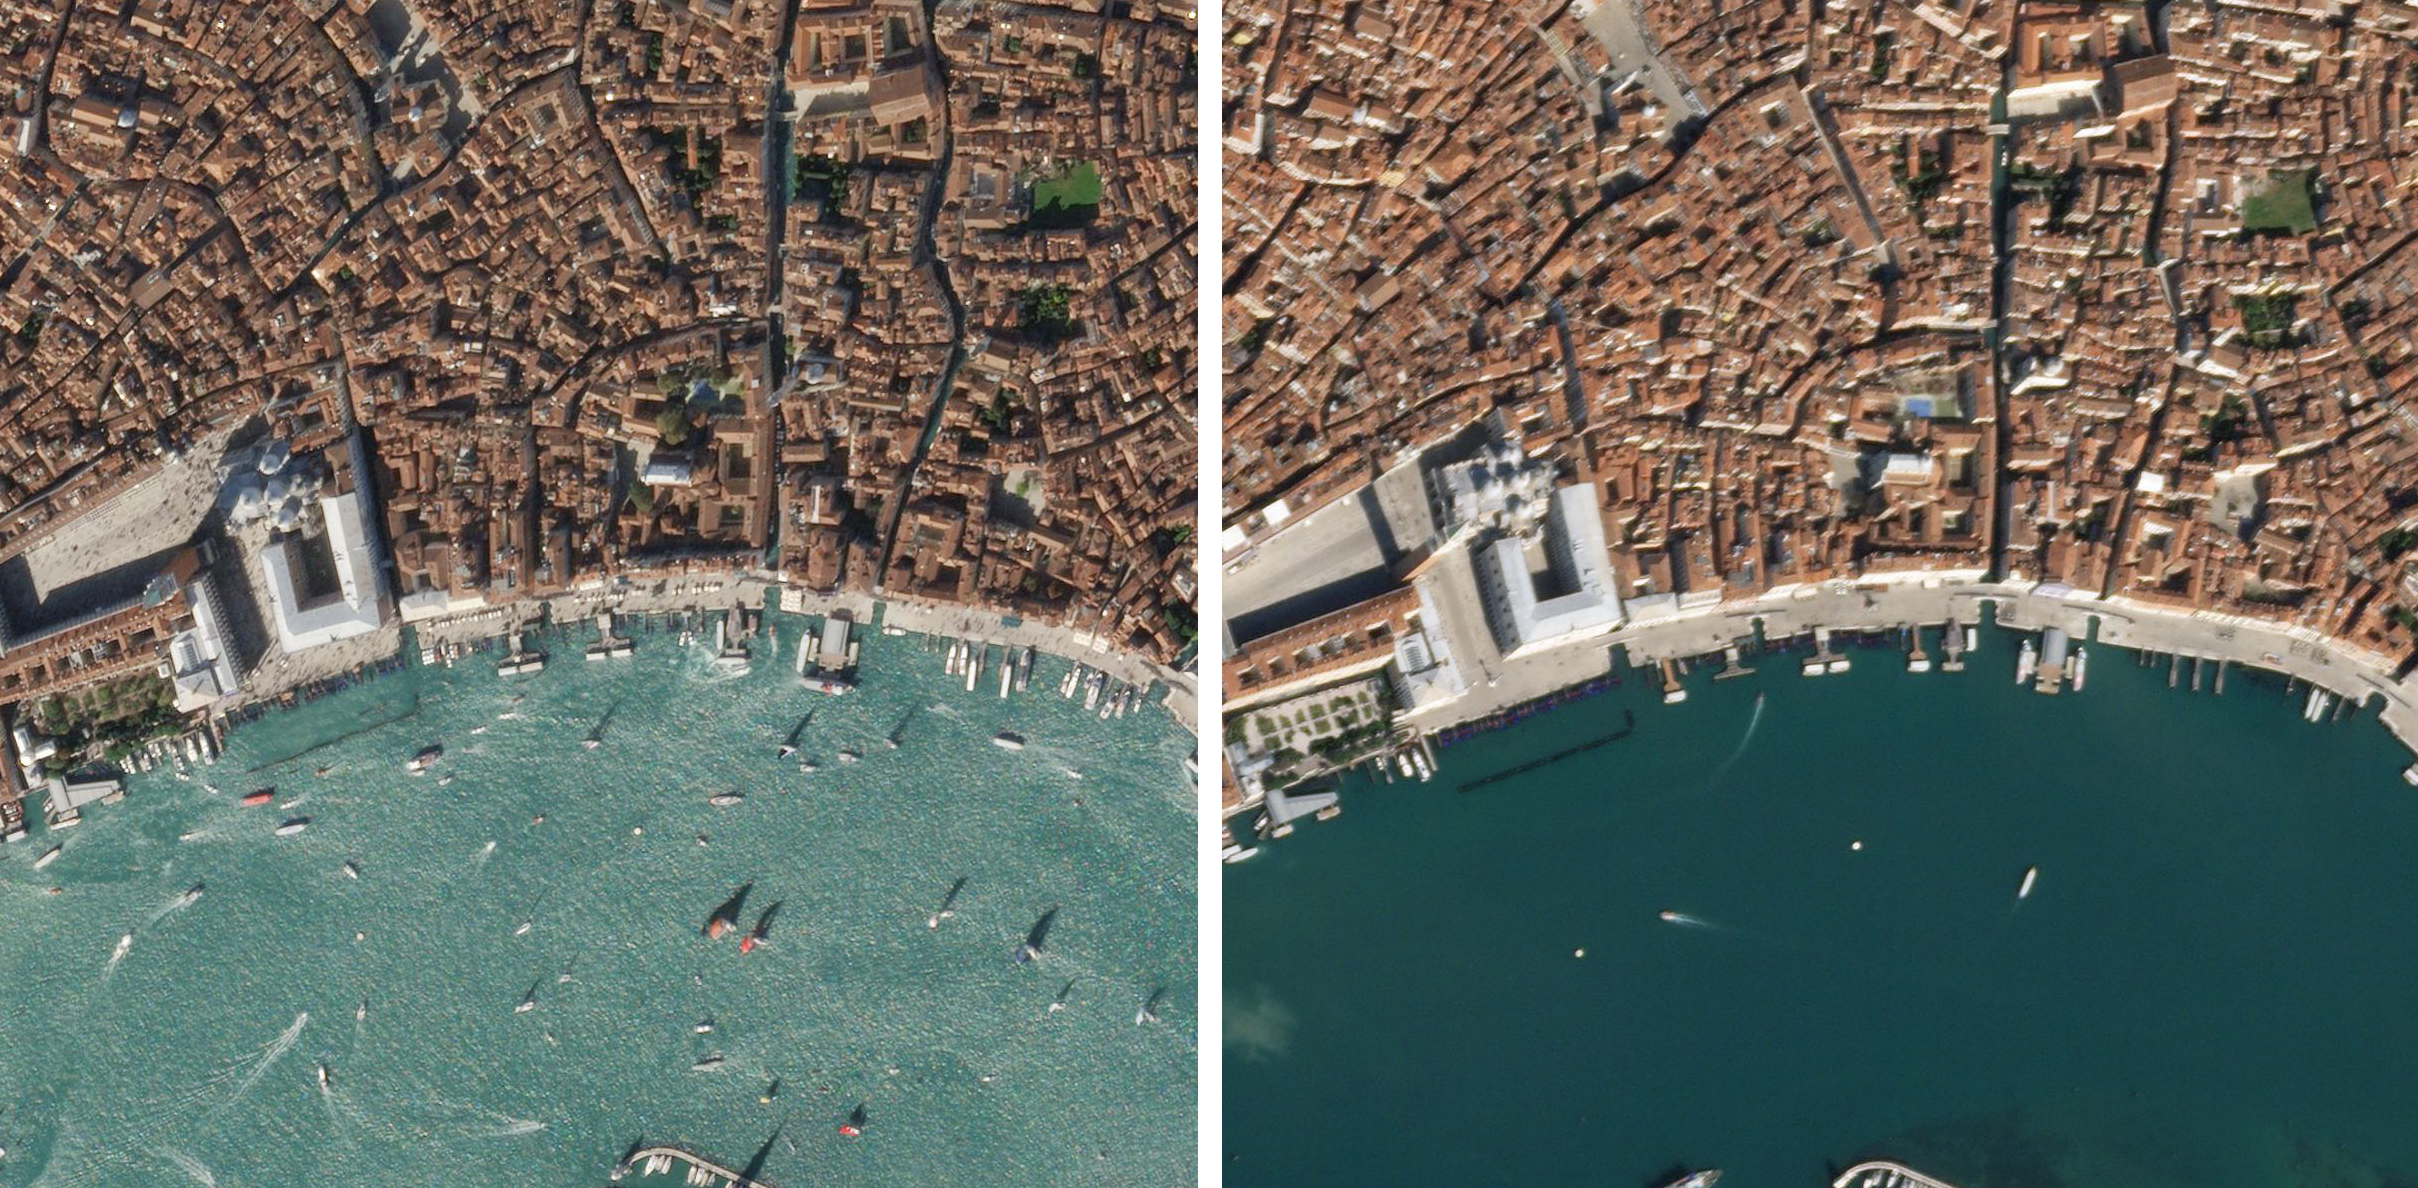 Planet imagery shows the usually-busy Venice canals in October of 2019 (left) and the nearly empty waterways on March 18, 2020 (right), following Prime Minister Giuseppe Conte's call for a countrywide lockdown. © 2020, Planet Labs Inc. All Rights Reserved.